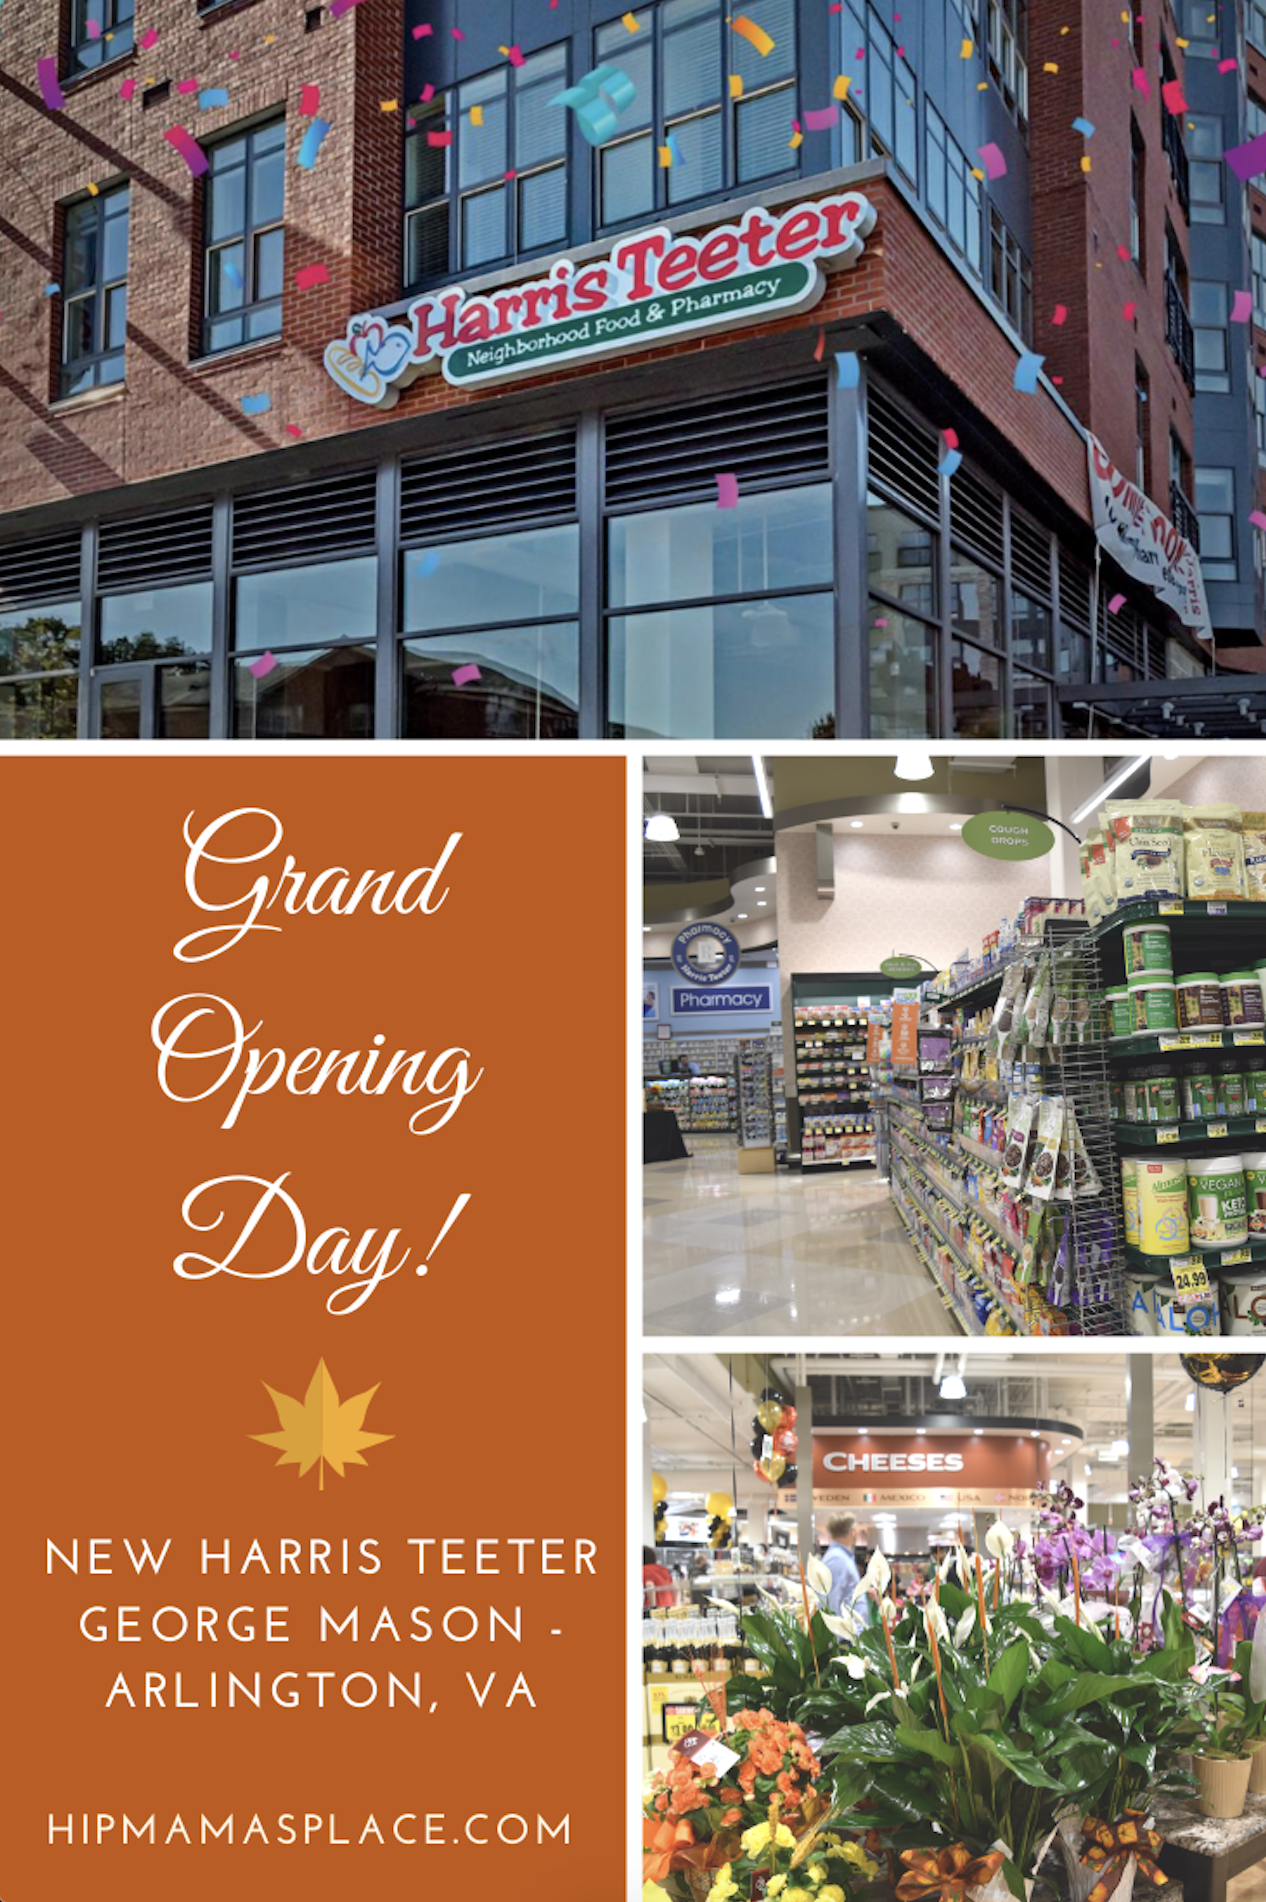 Check out the brand new Harris Teeter George Mason store in Arlington, VA!  #AD Full story and photos from the grand opening day event @ https://bit.ly/2Ptbpd8  #myHarrisTeeter #tasteofteeter